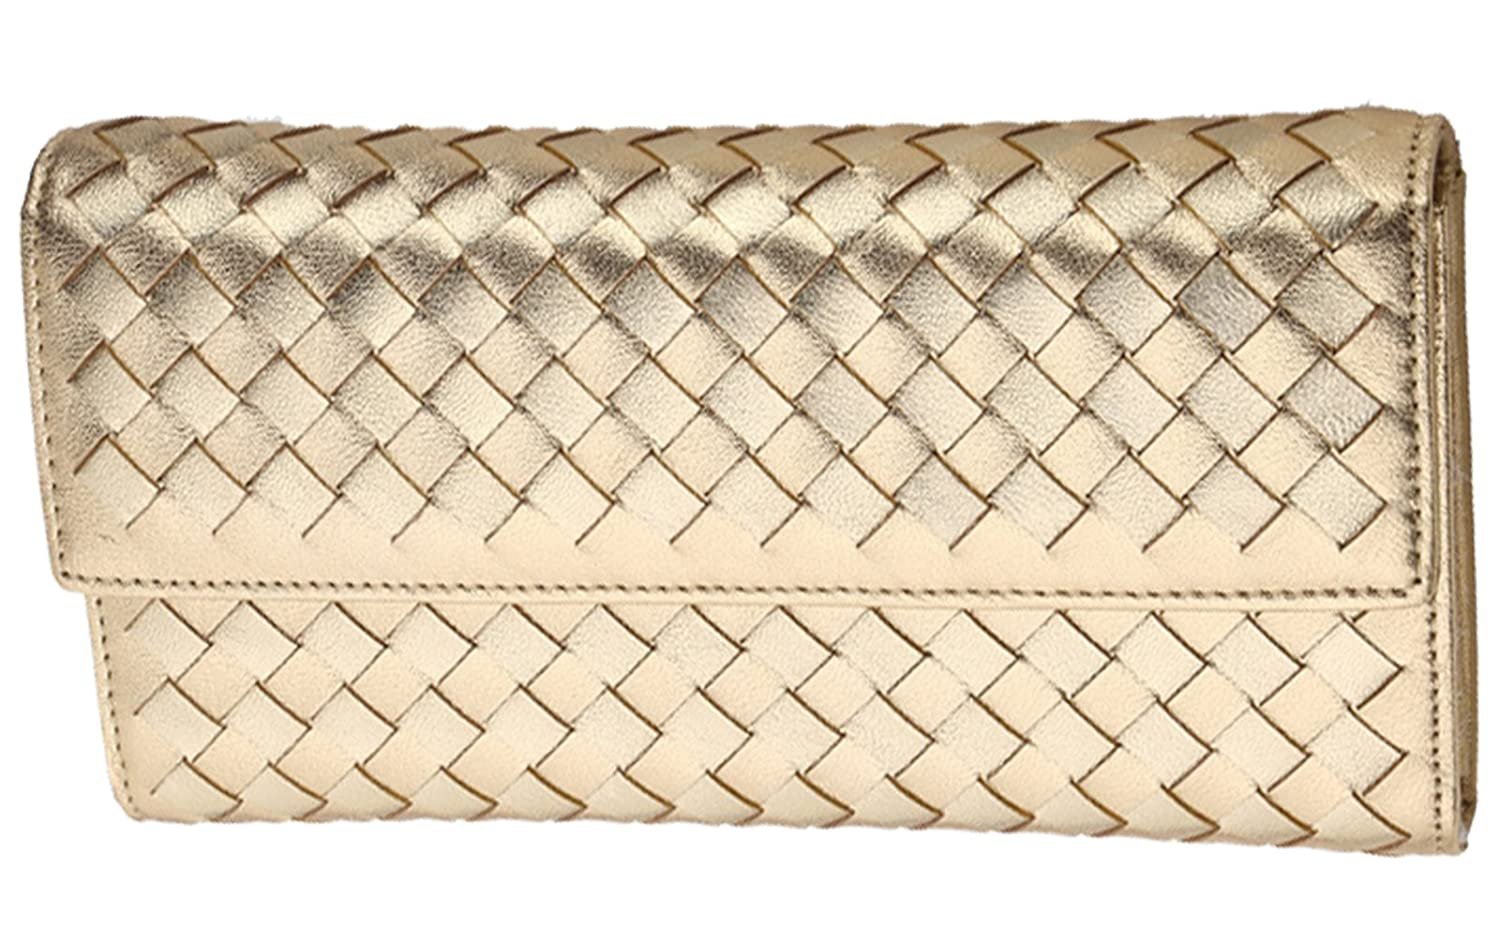 Tina Women's Retro Buckle Quilted Braided Flap Envelope Clutch Purse